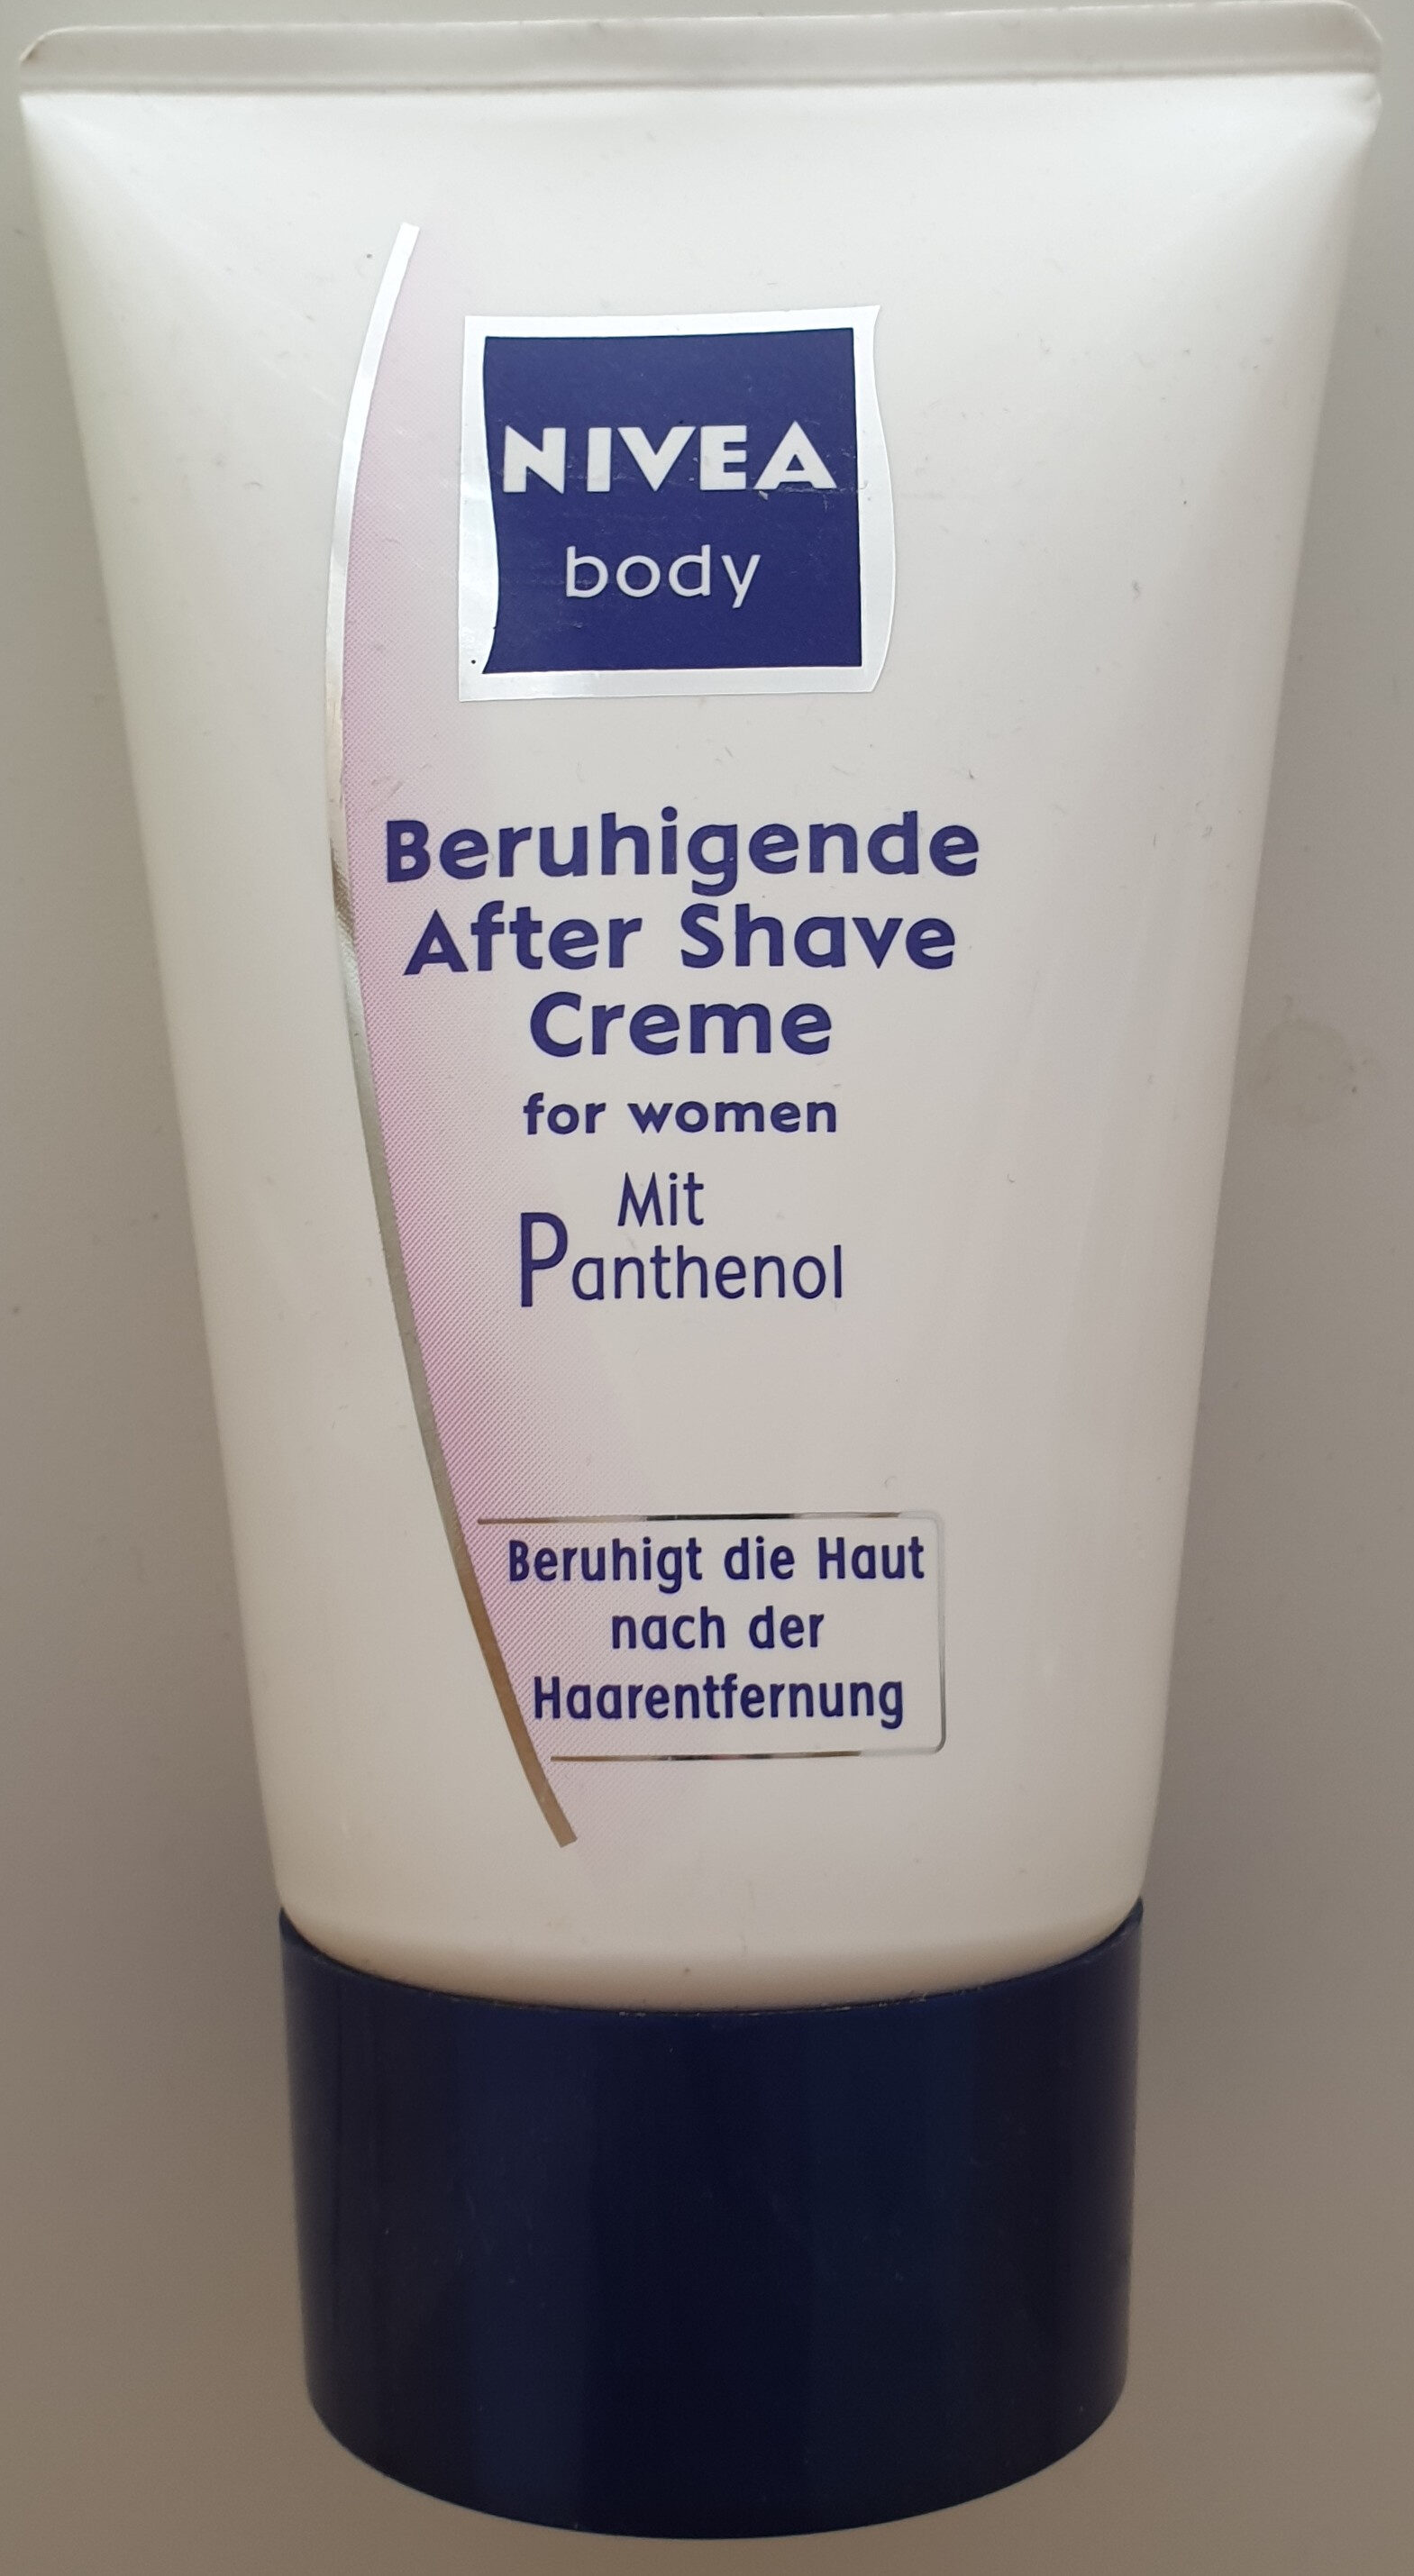 Beruhigende After Shave Creme for women, Mit Panthenol - Product